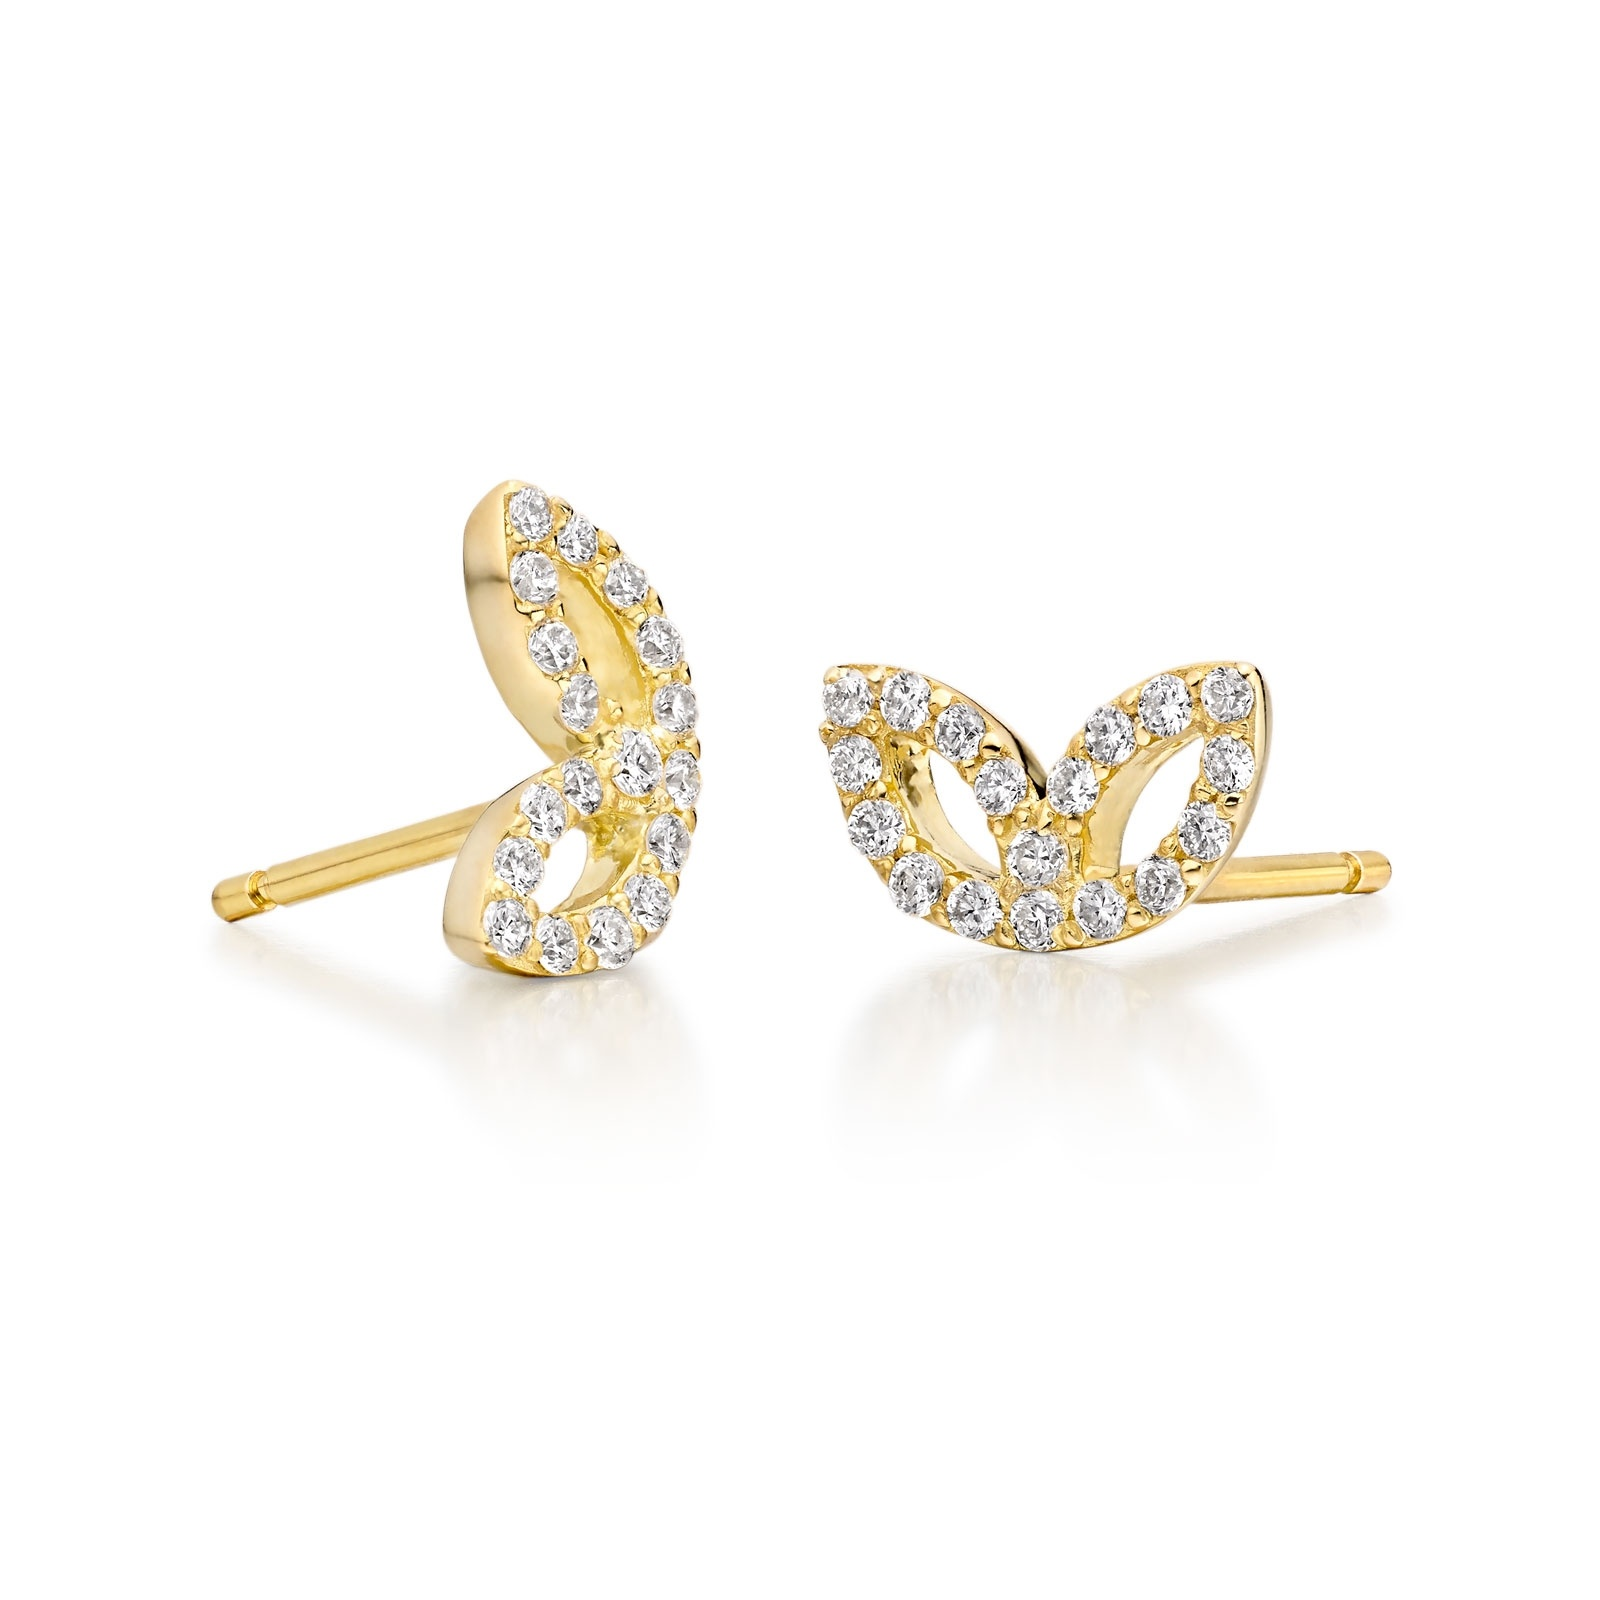 Enchanted Diamond Studs in Yellow Gold with Akoya Pearls-AEWRYG0487-1